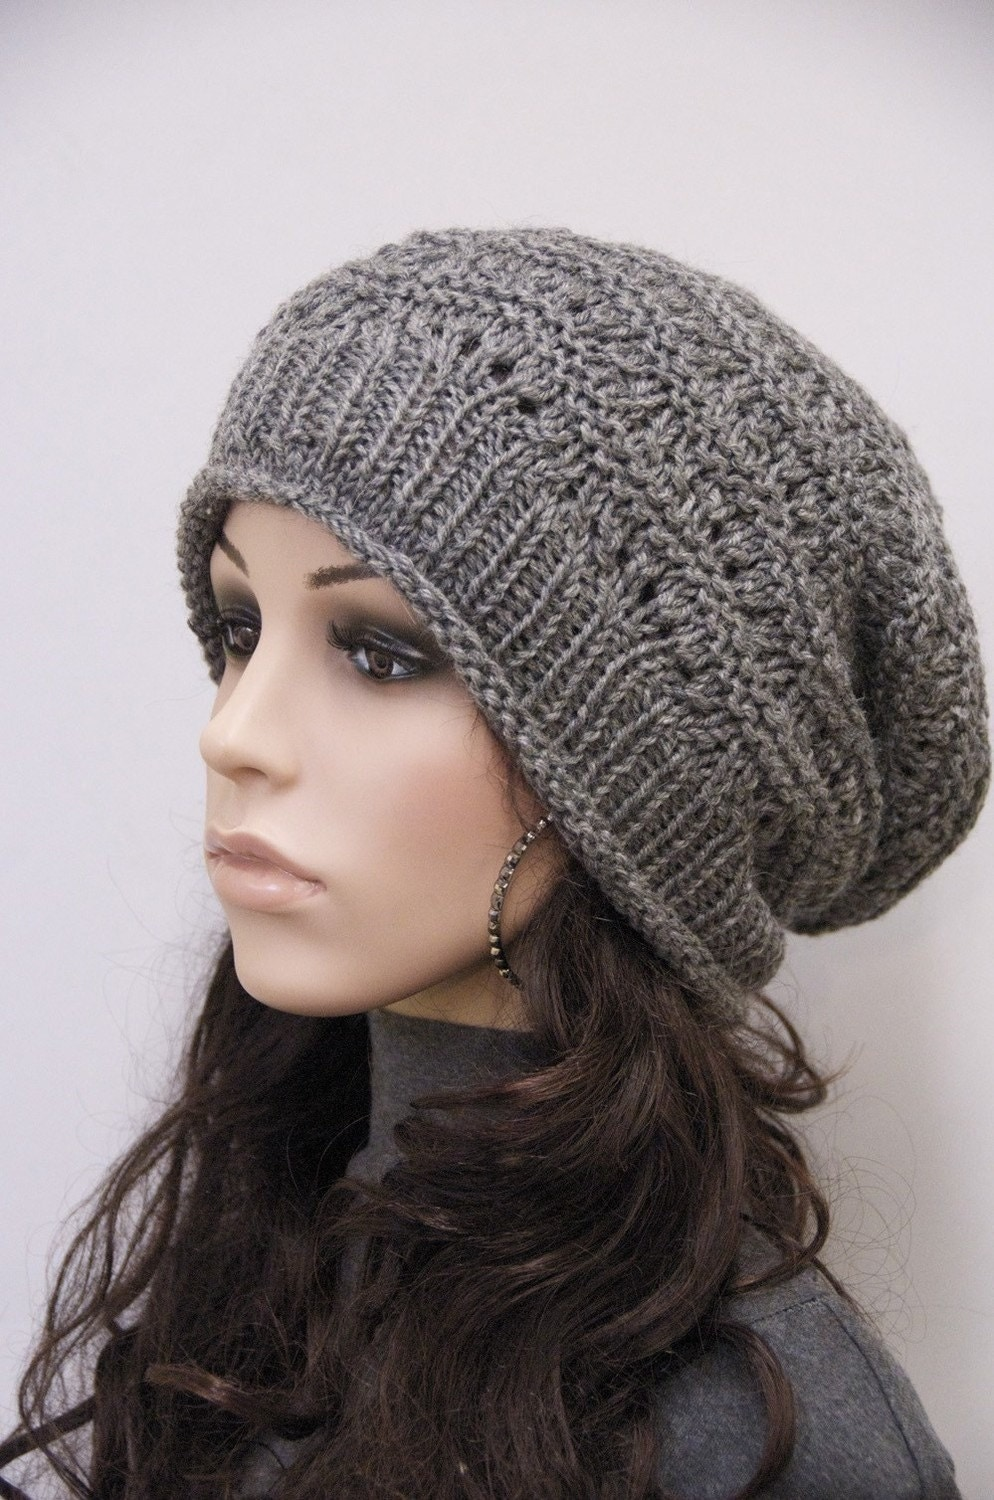 Knitting Patterns For Hats : Knit hat Charcoal Chunky Wool Hat slouchy hatwool by MaxMelody